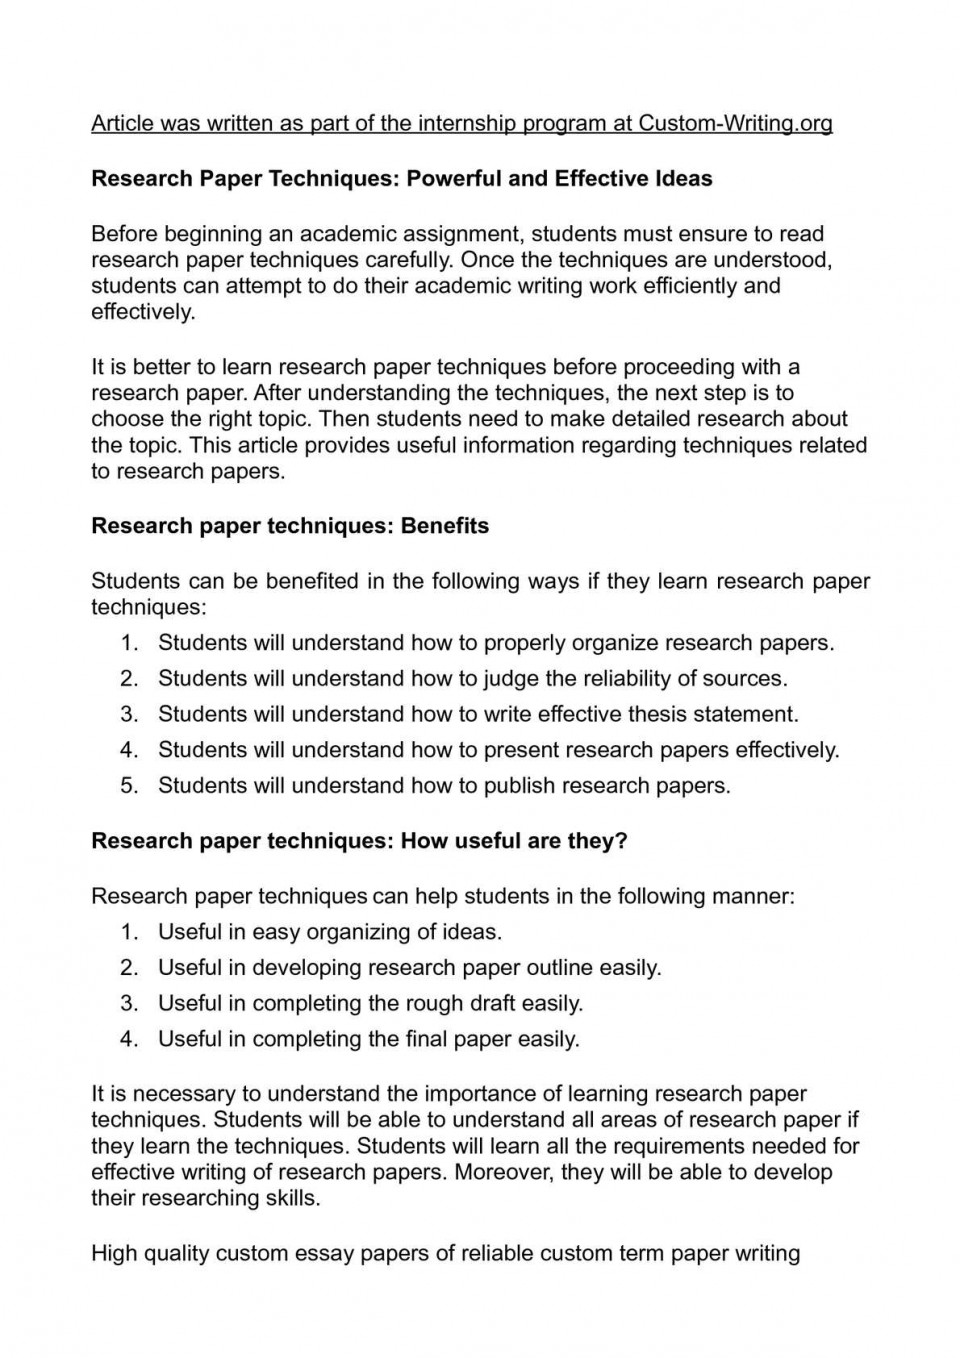 003 Ideas For Research Paper Fascinating Papers In Economics High School College 960